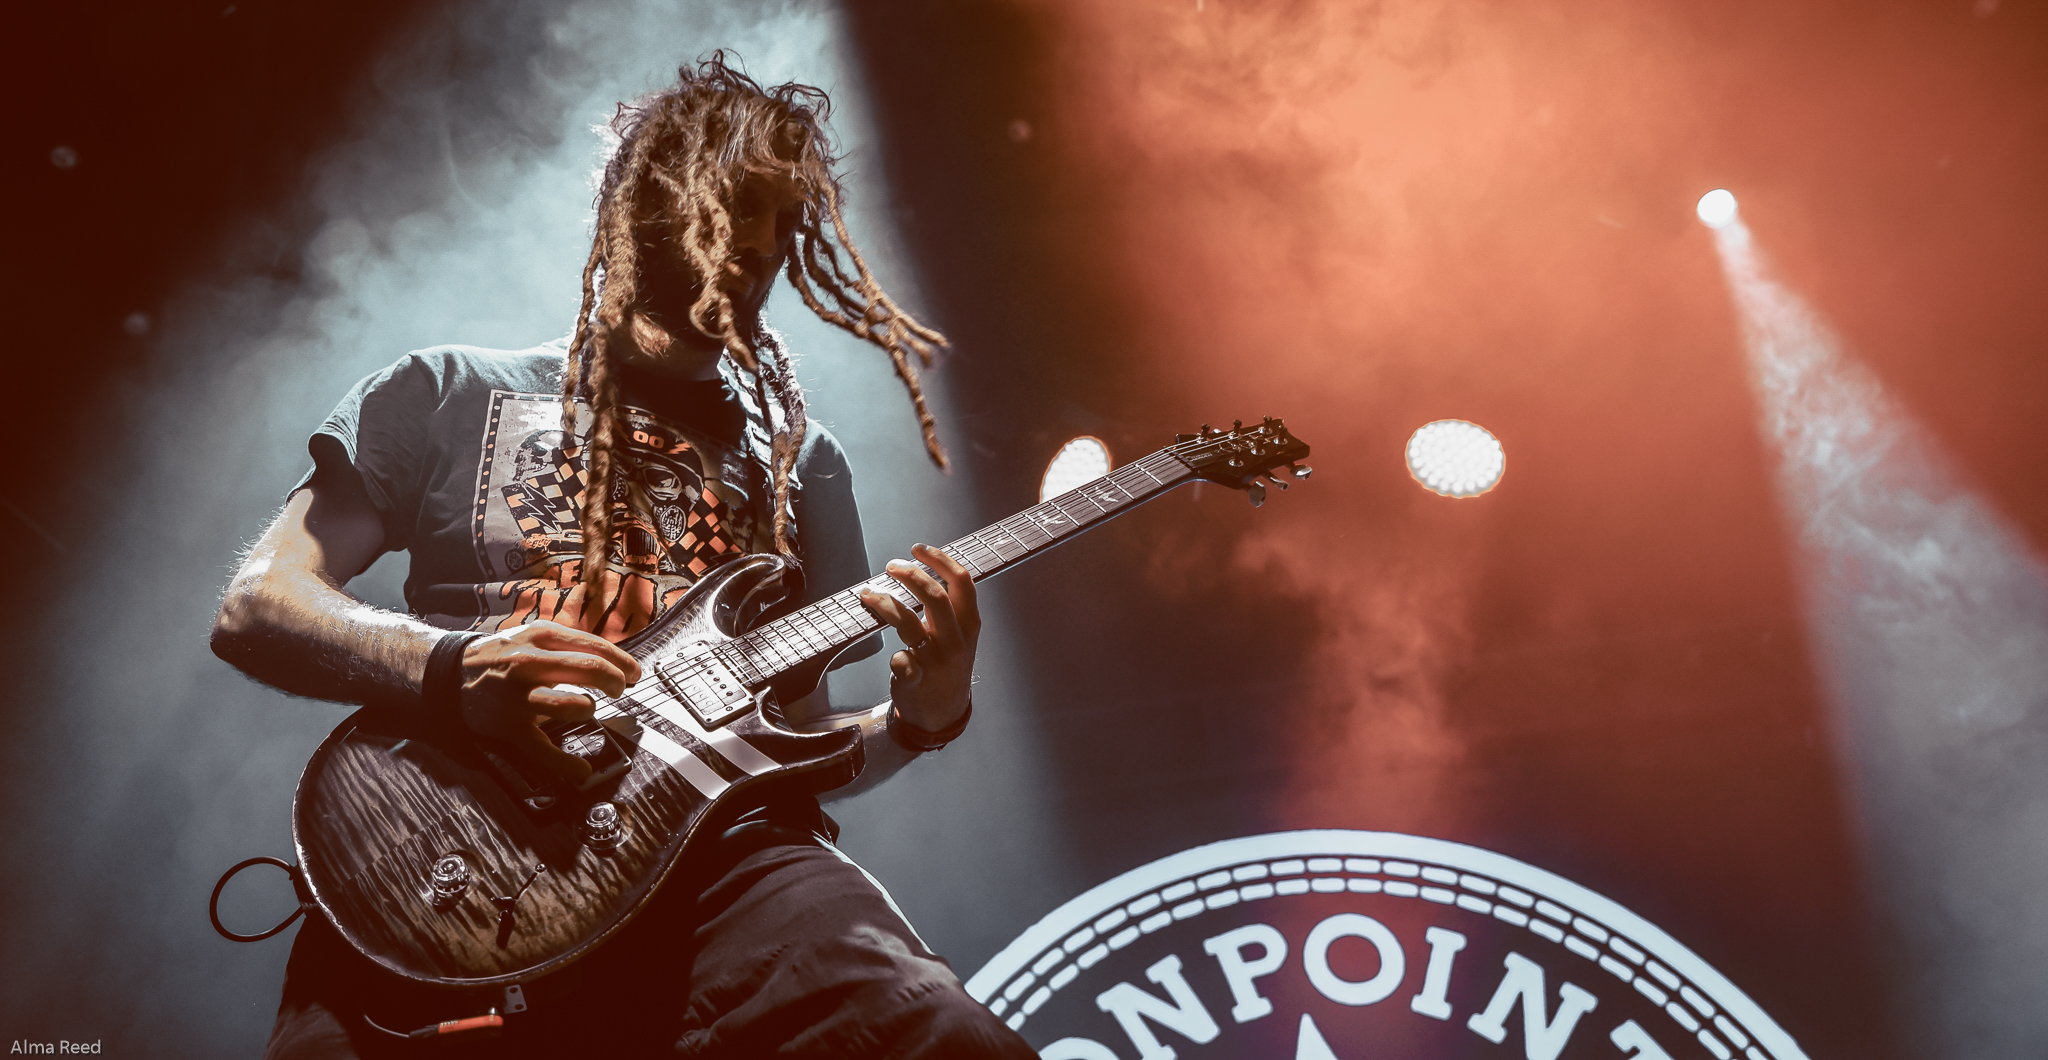 P O D and Nonpoint rock Nashville's Cowan   Audiolove